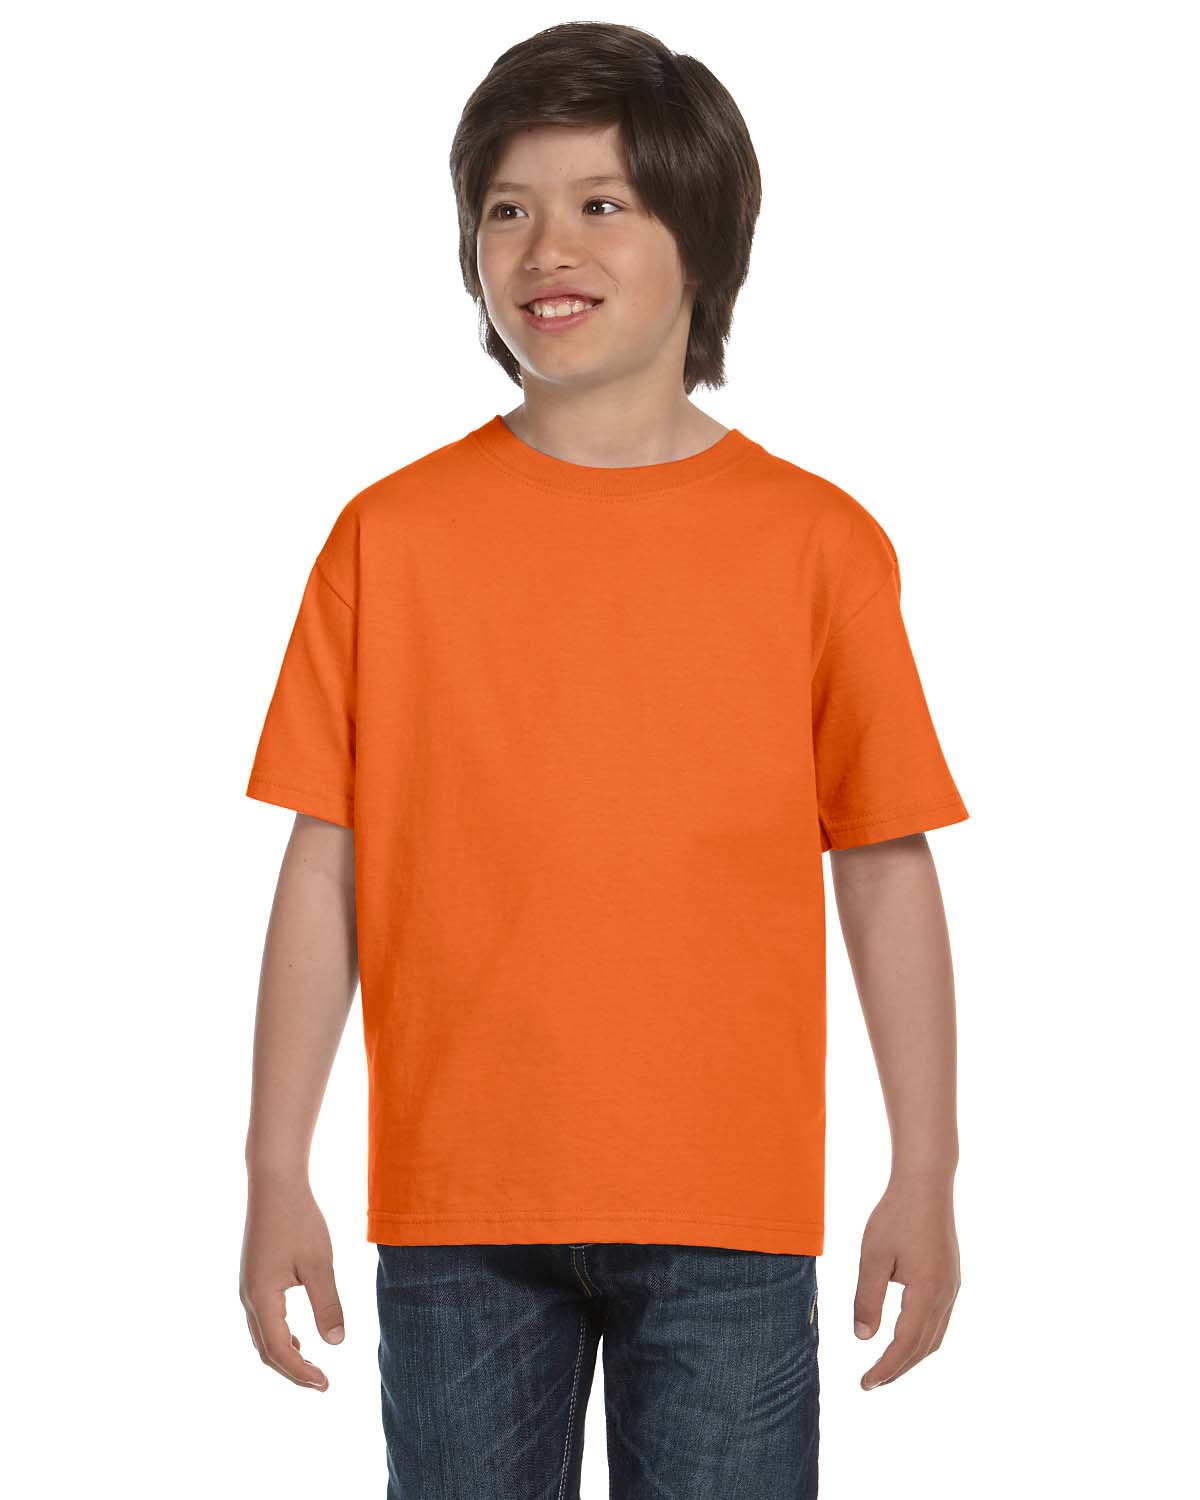 Hanes Youth 6.1 Oz. Beefy-T®